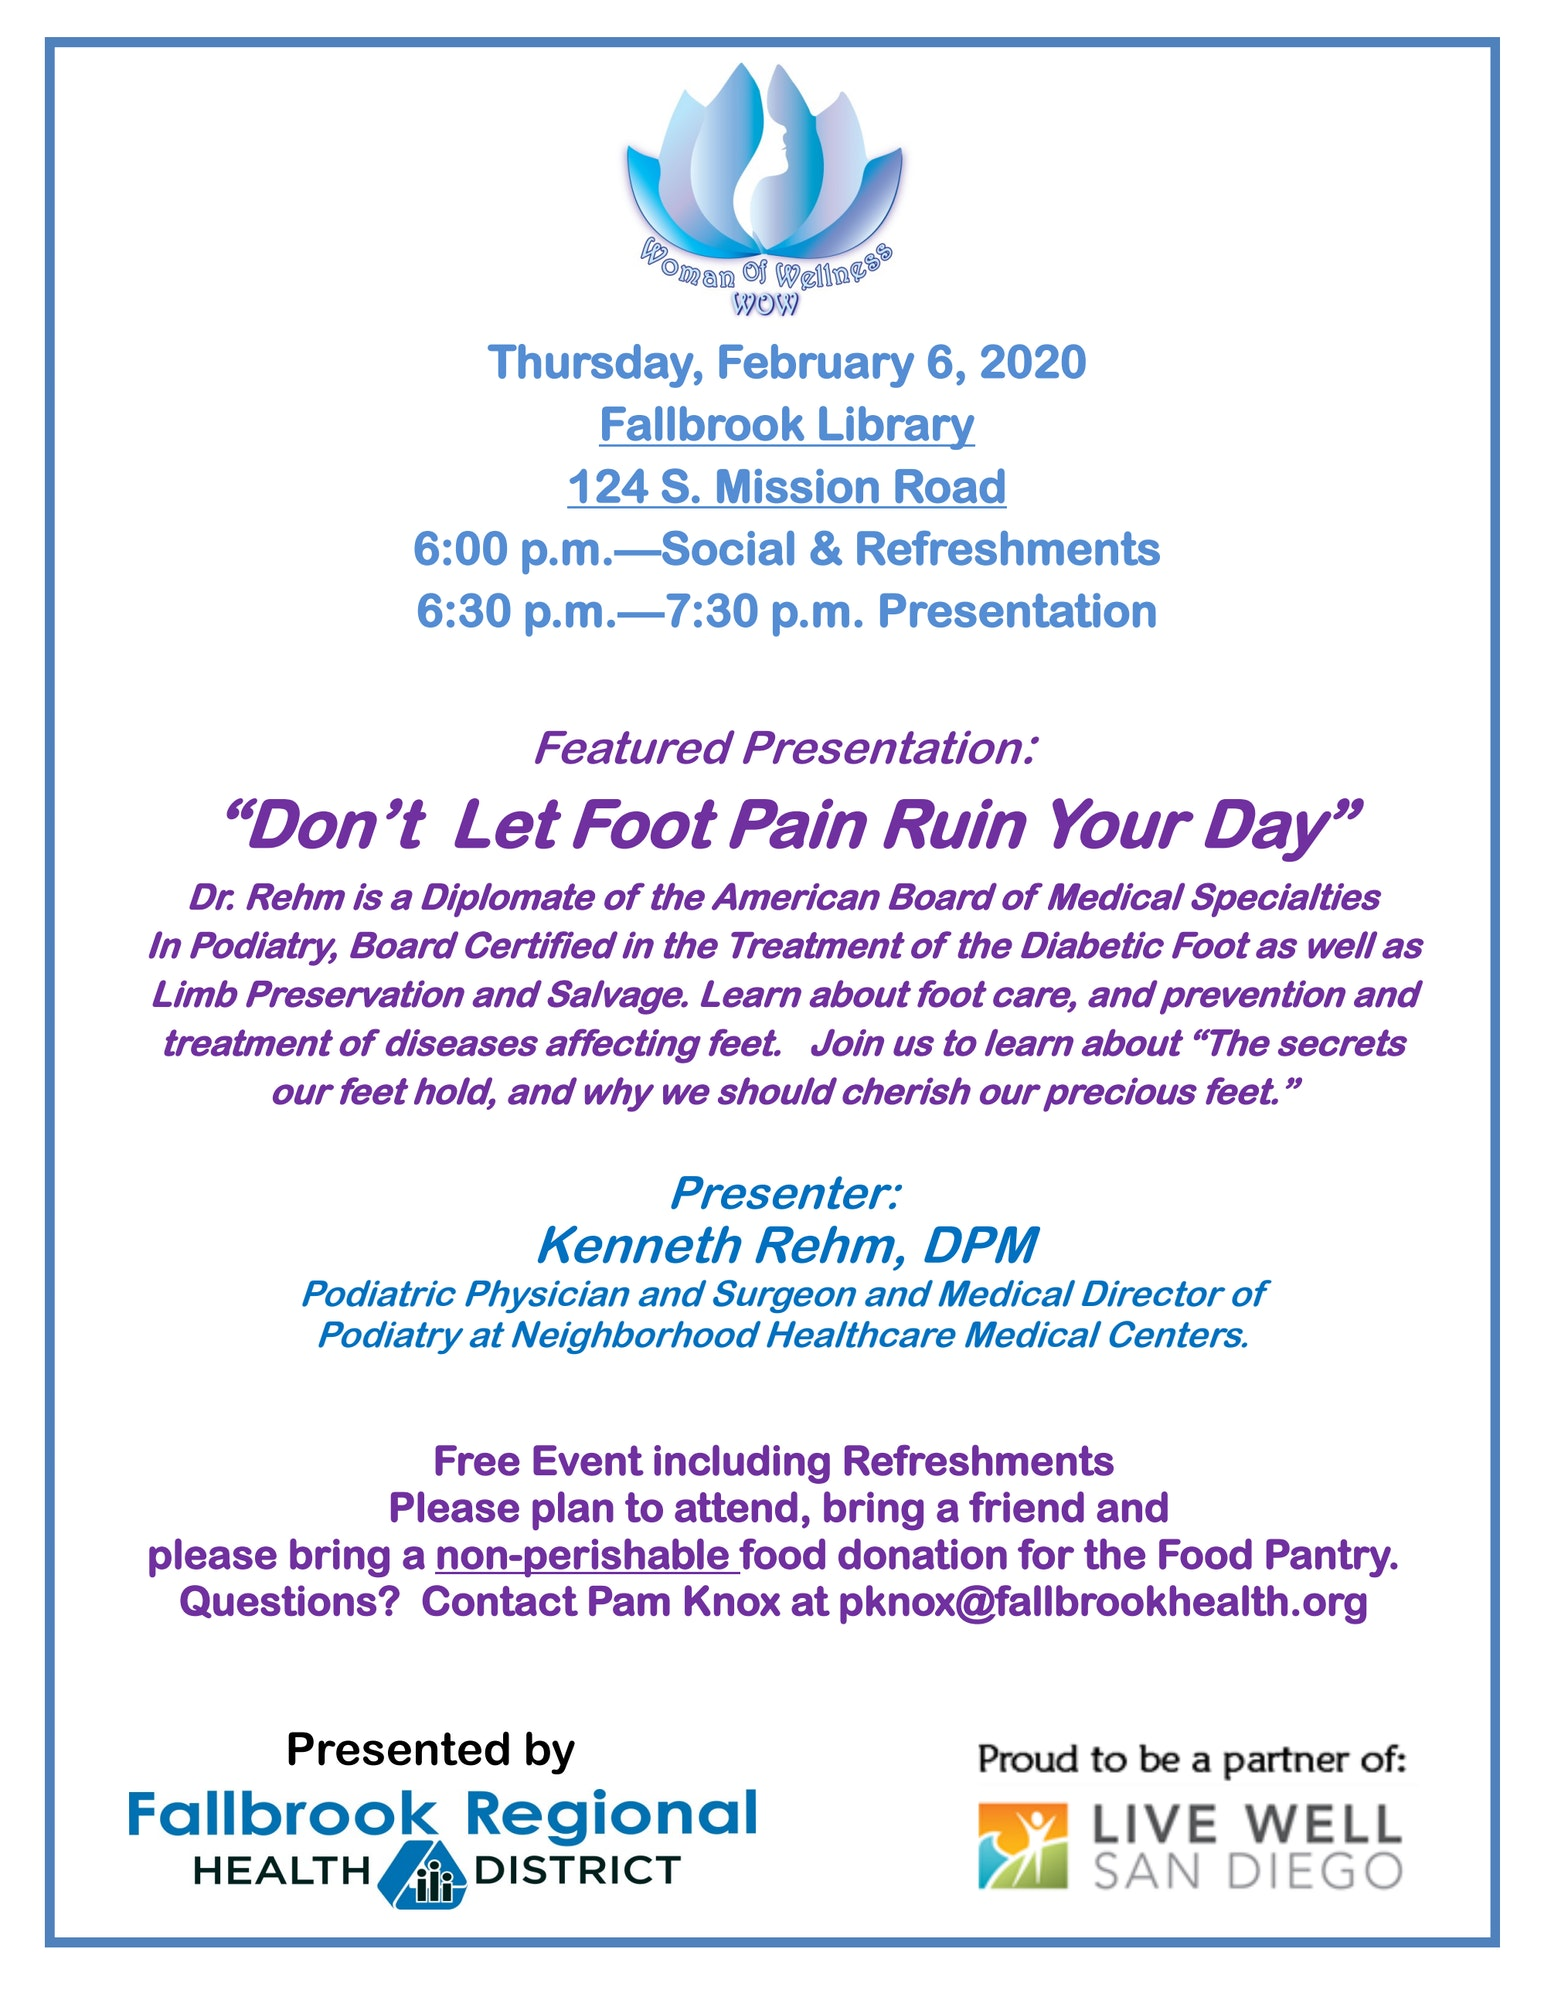 """Don't Let Foot Pain Ruin Your Day"" by Kenneth Rehm, DPM of Podiatric Physician and Surgeon and Medical Director of Podiatry at Neighborhood Healthcare Medical Centers at the Fallbrook Library, 124 S. Mission Rd. at 6:00pm"